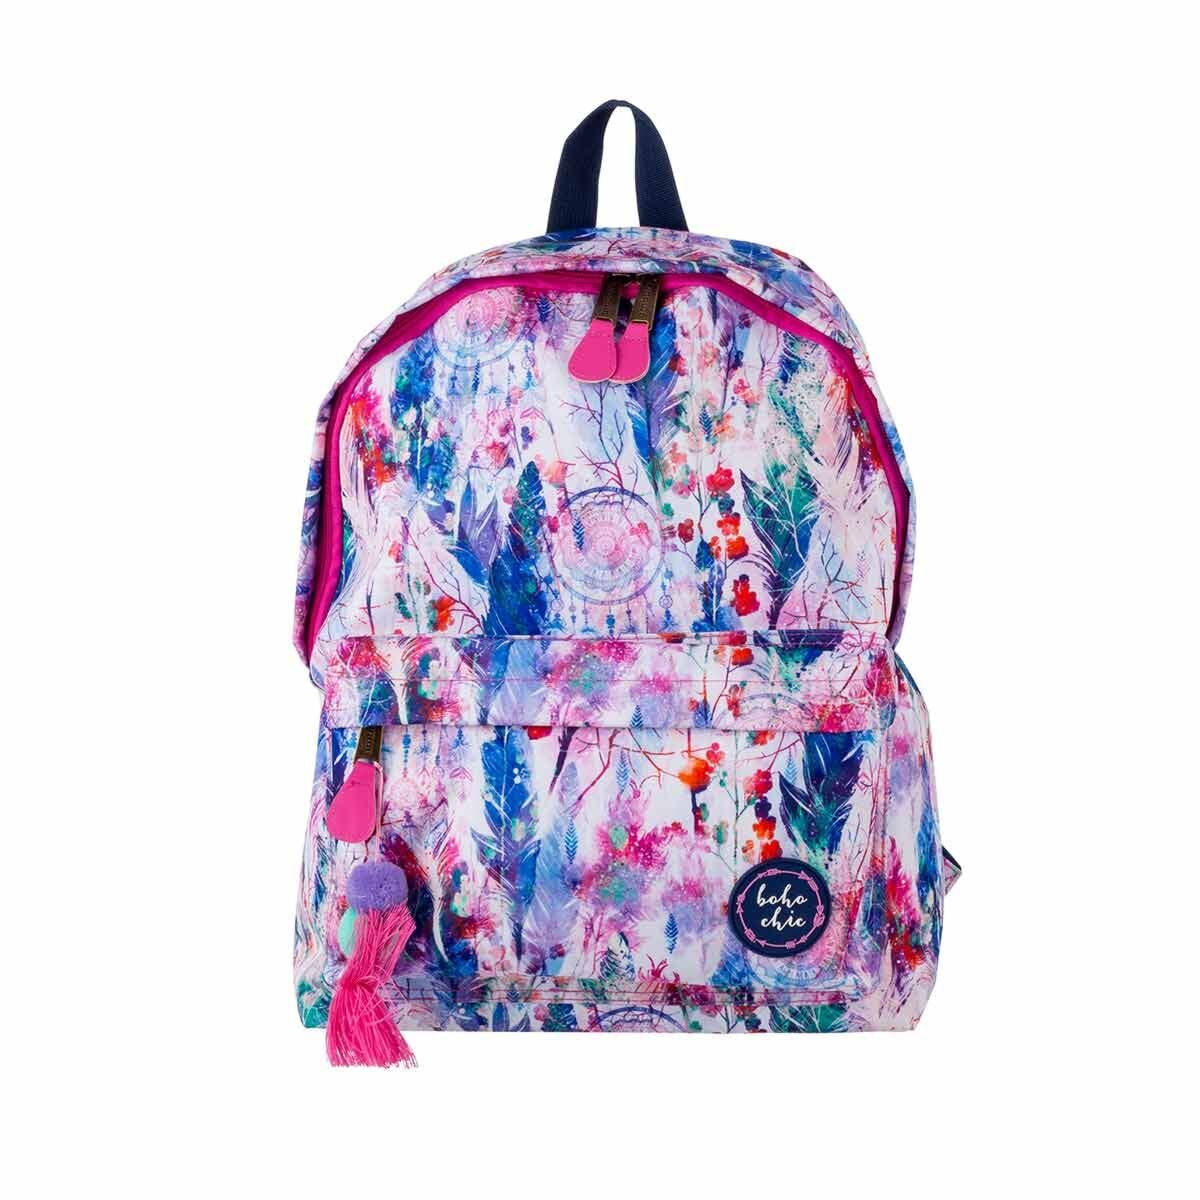 Ambar Boho Chic Backpack with Front Pocket